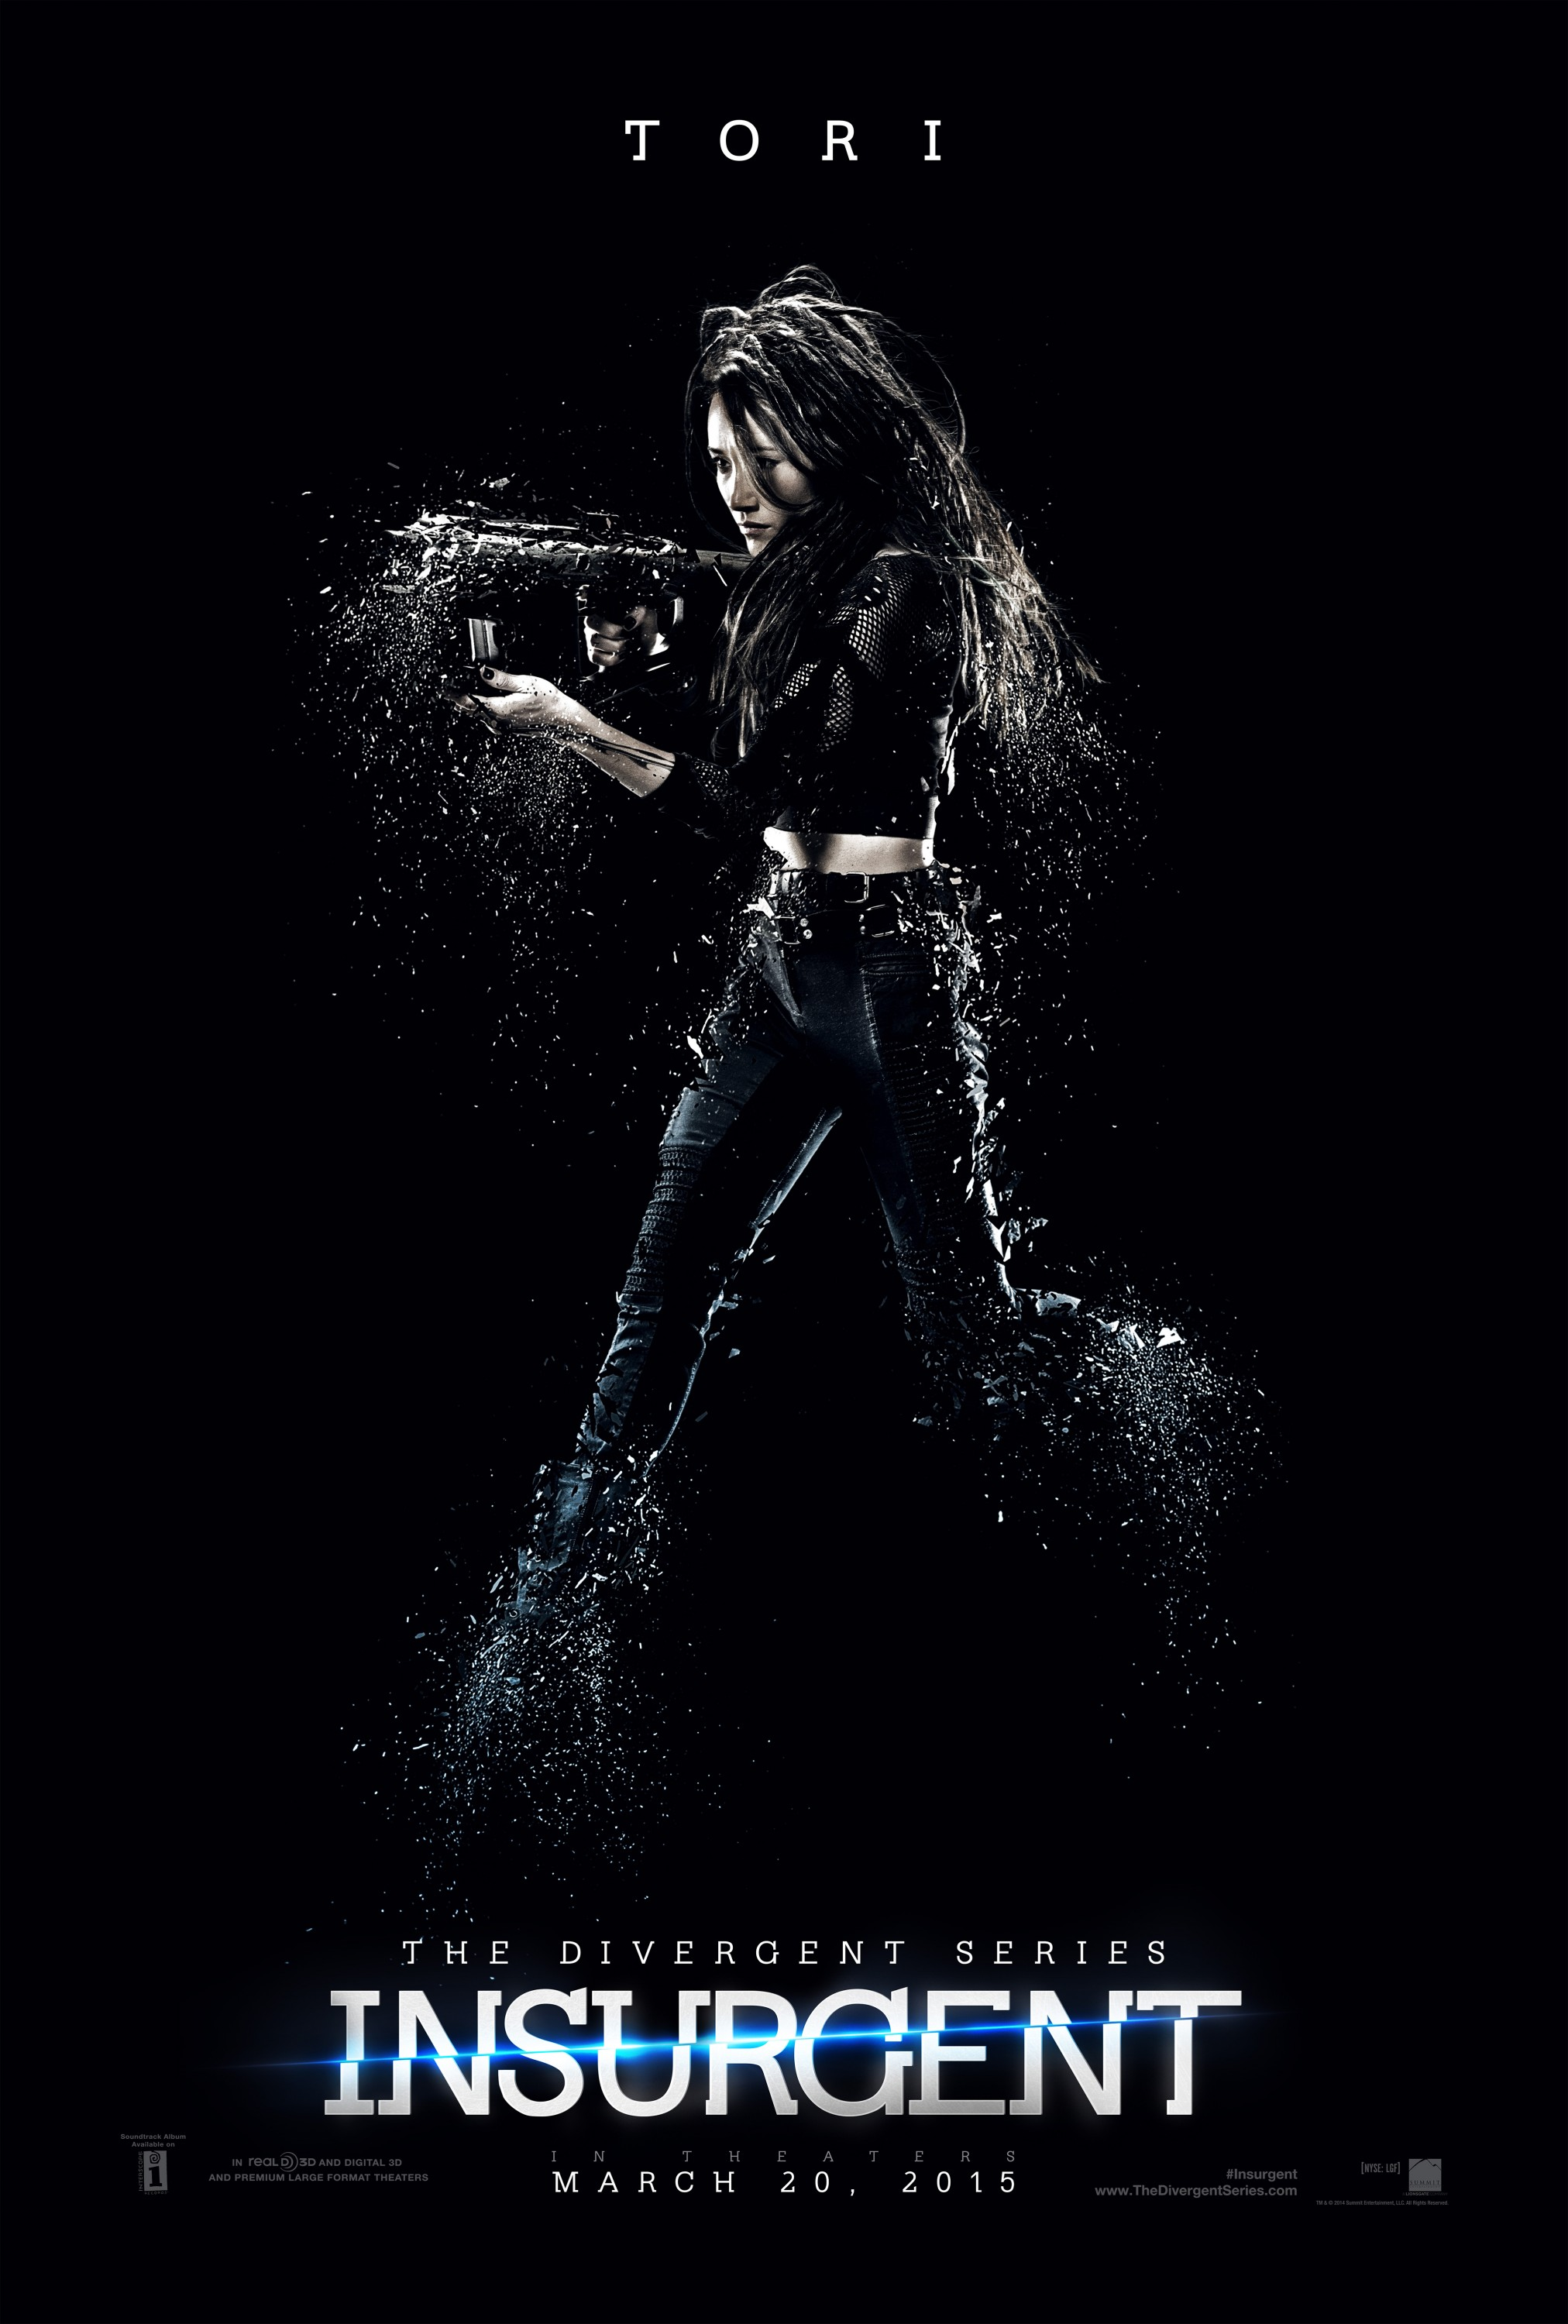 Insurgent-Official Poster XXLG-30OUTUBRO2014-04